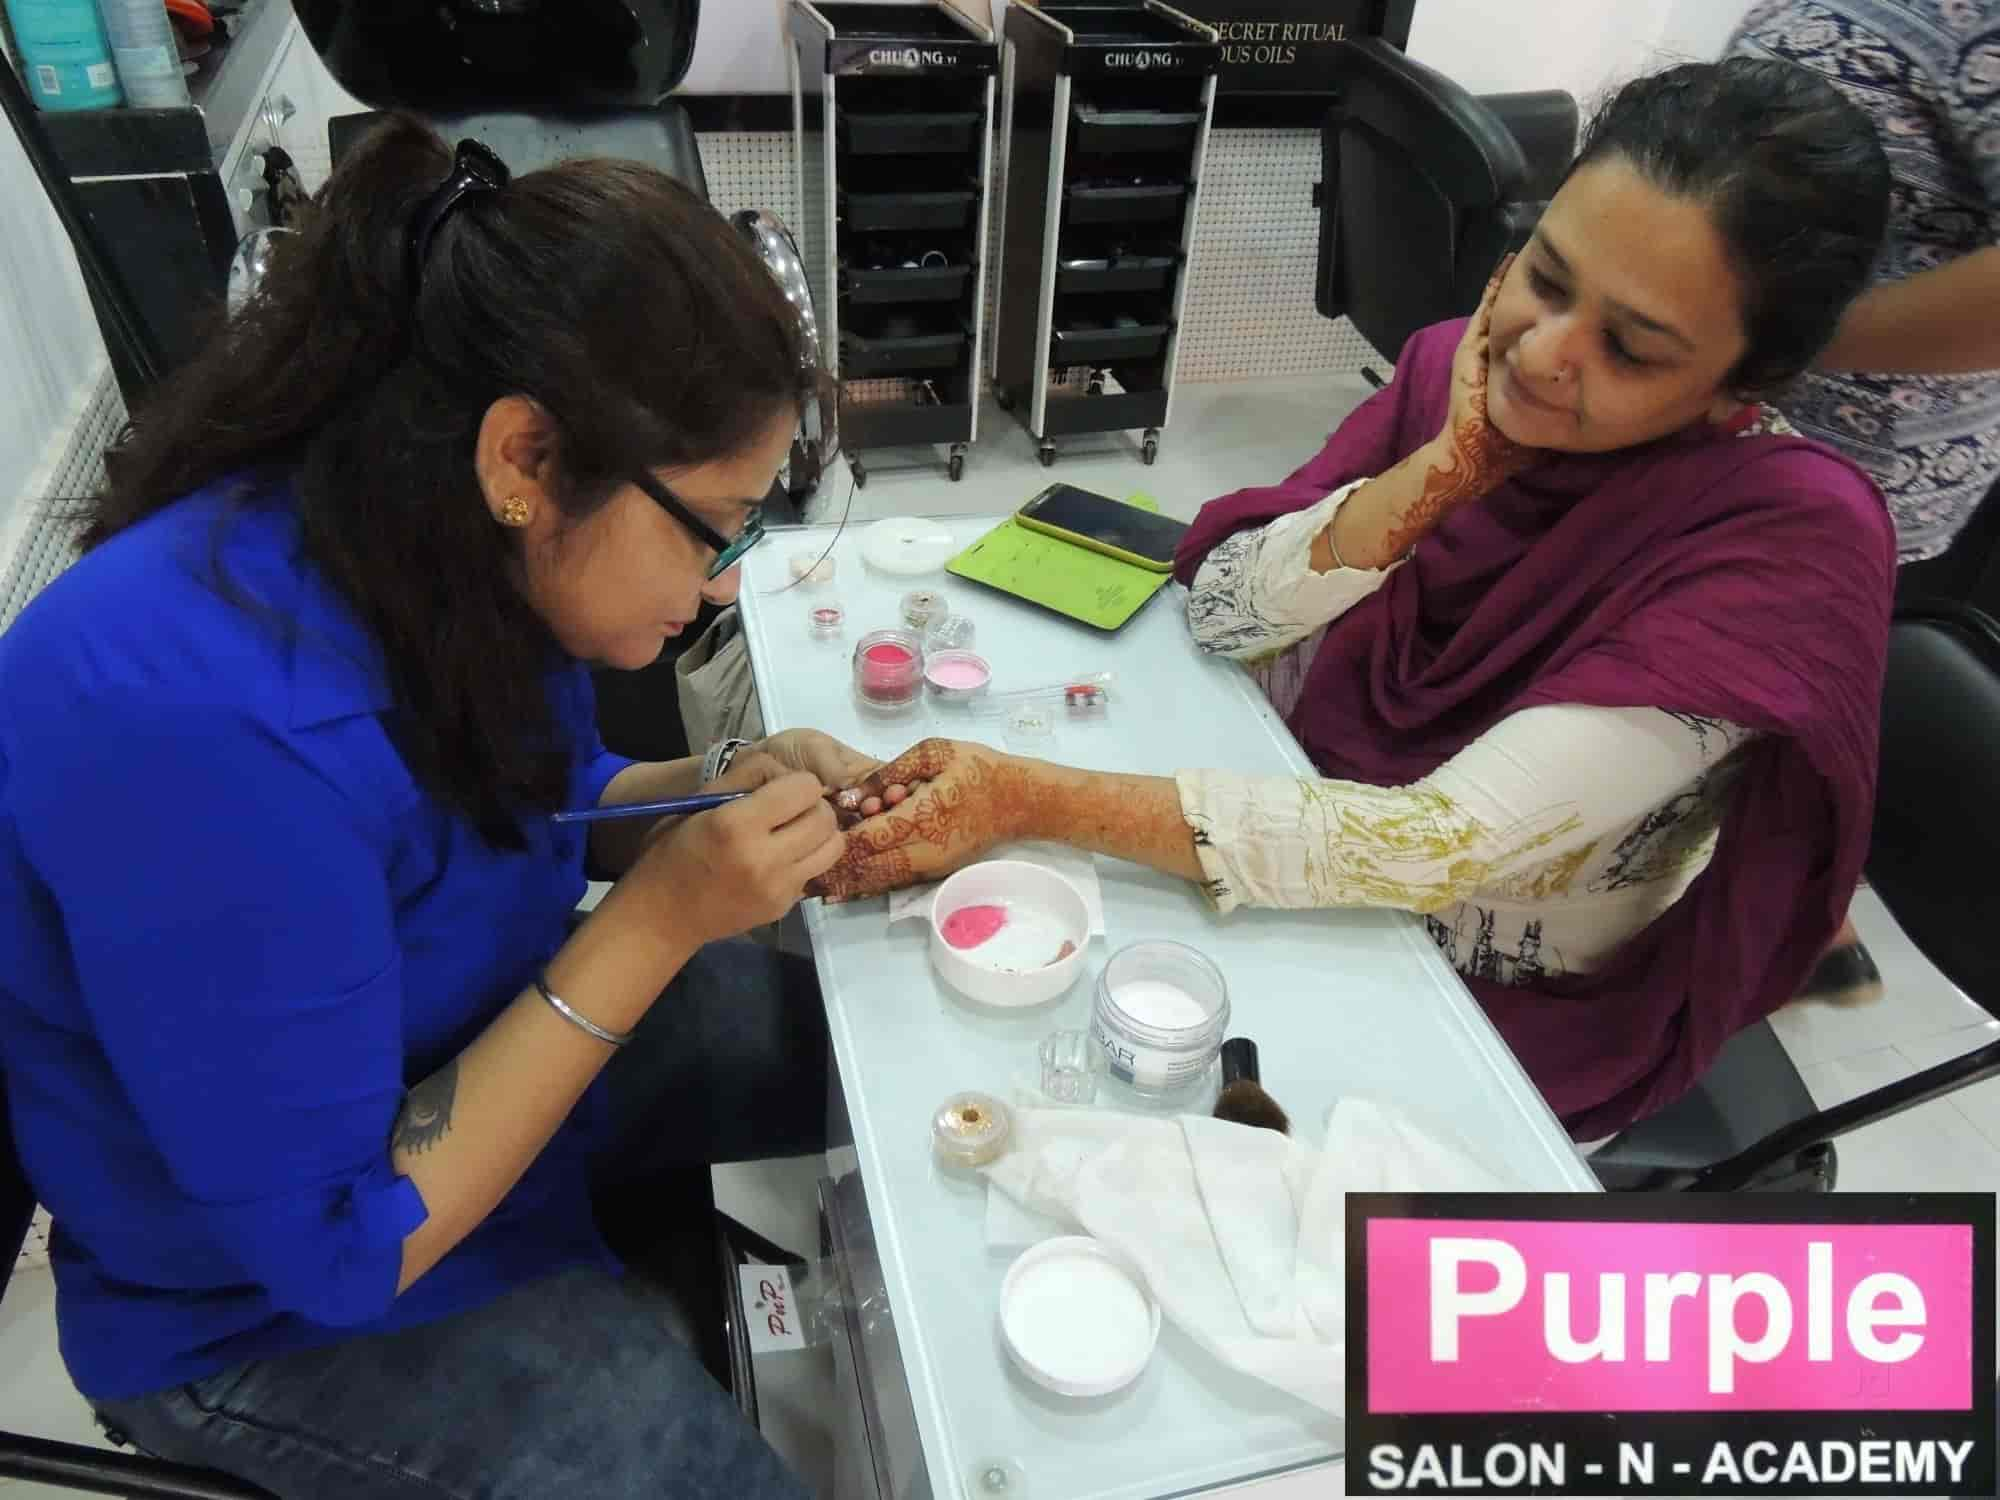 Purple Salon N Academy Photos, Mira Road, Thane- Pictures & Images ...